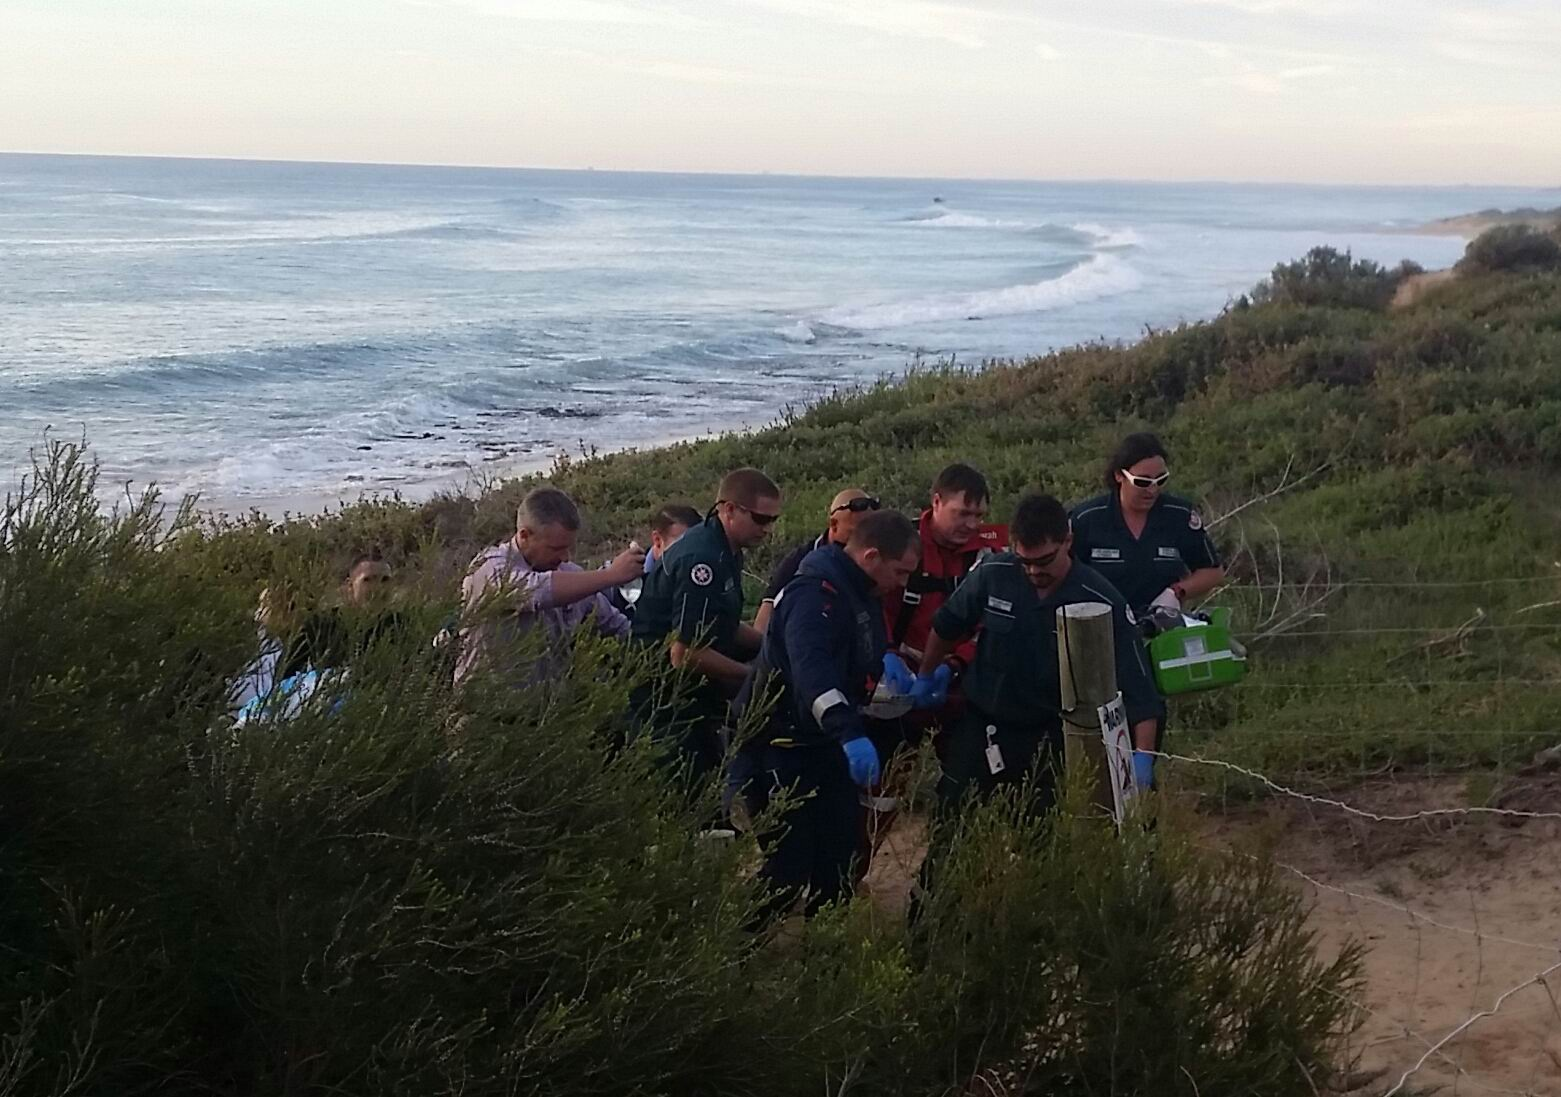 The man is carried up the beach to the waiting ambulance.